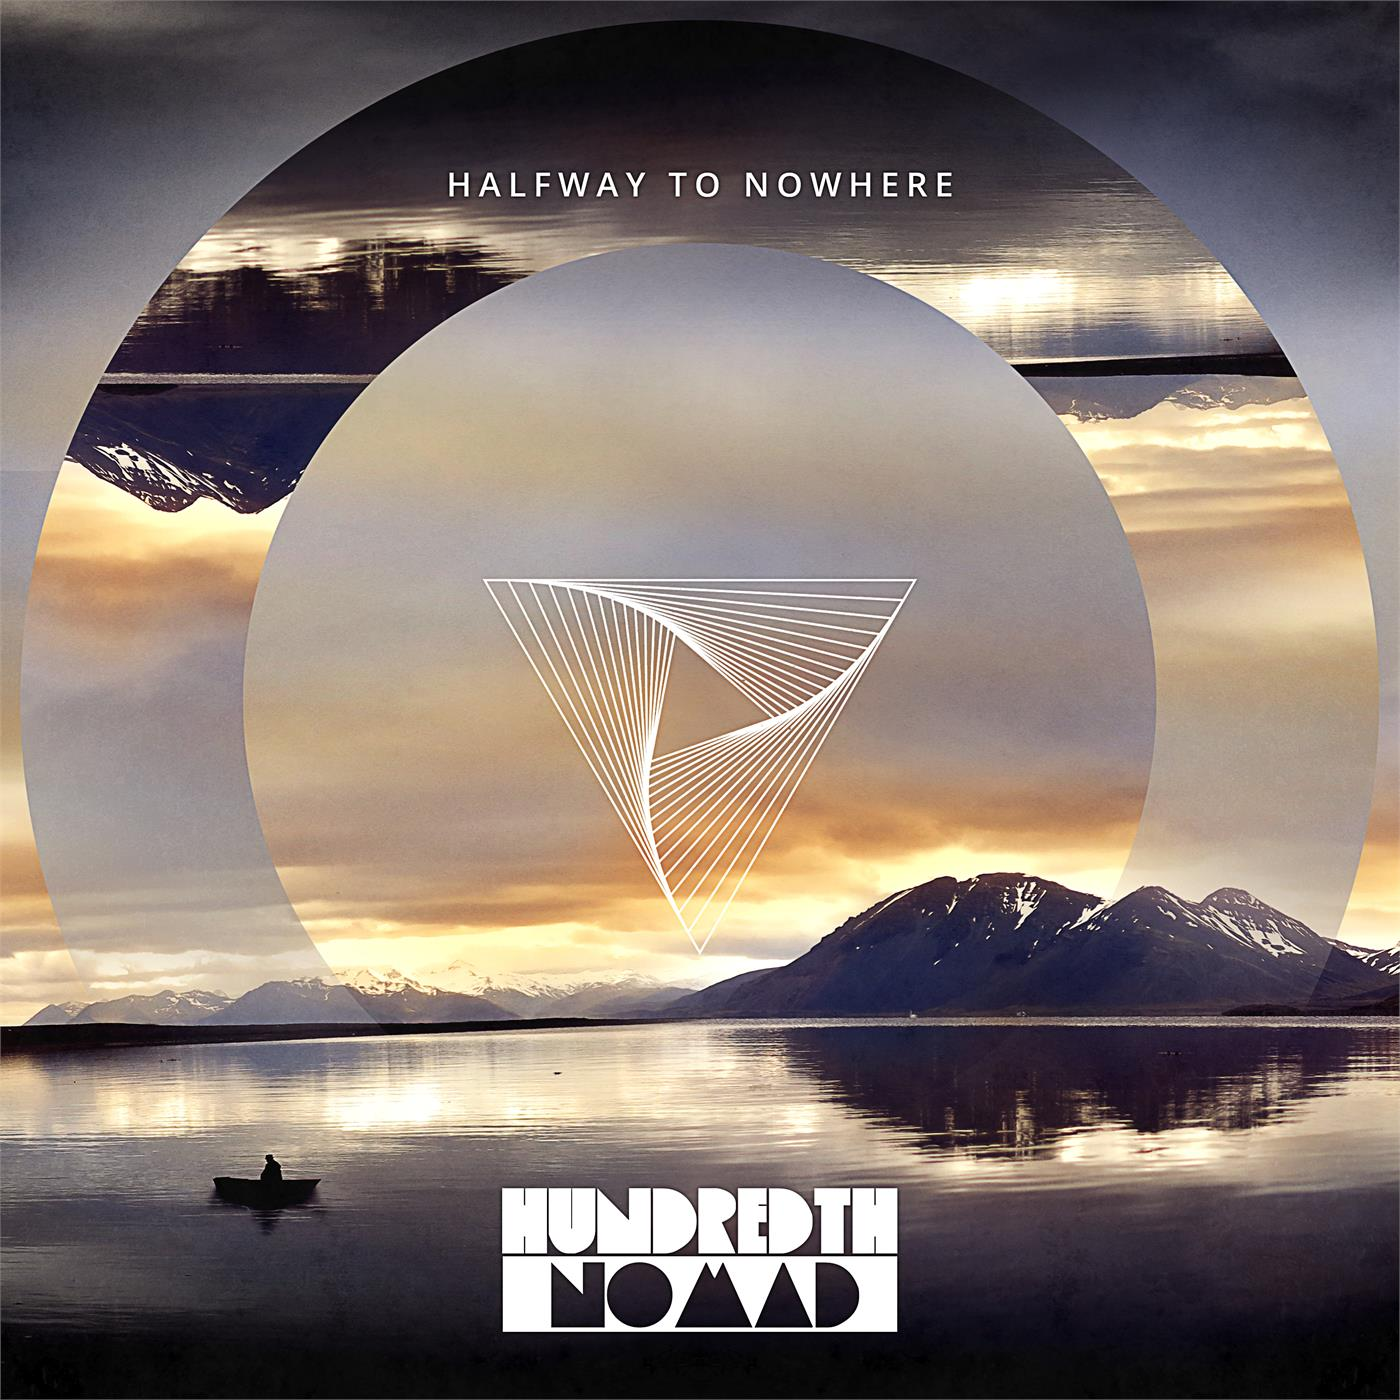 Halfway to Nowhere EP